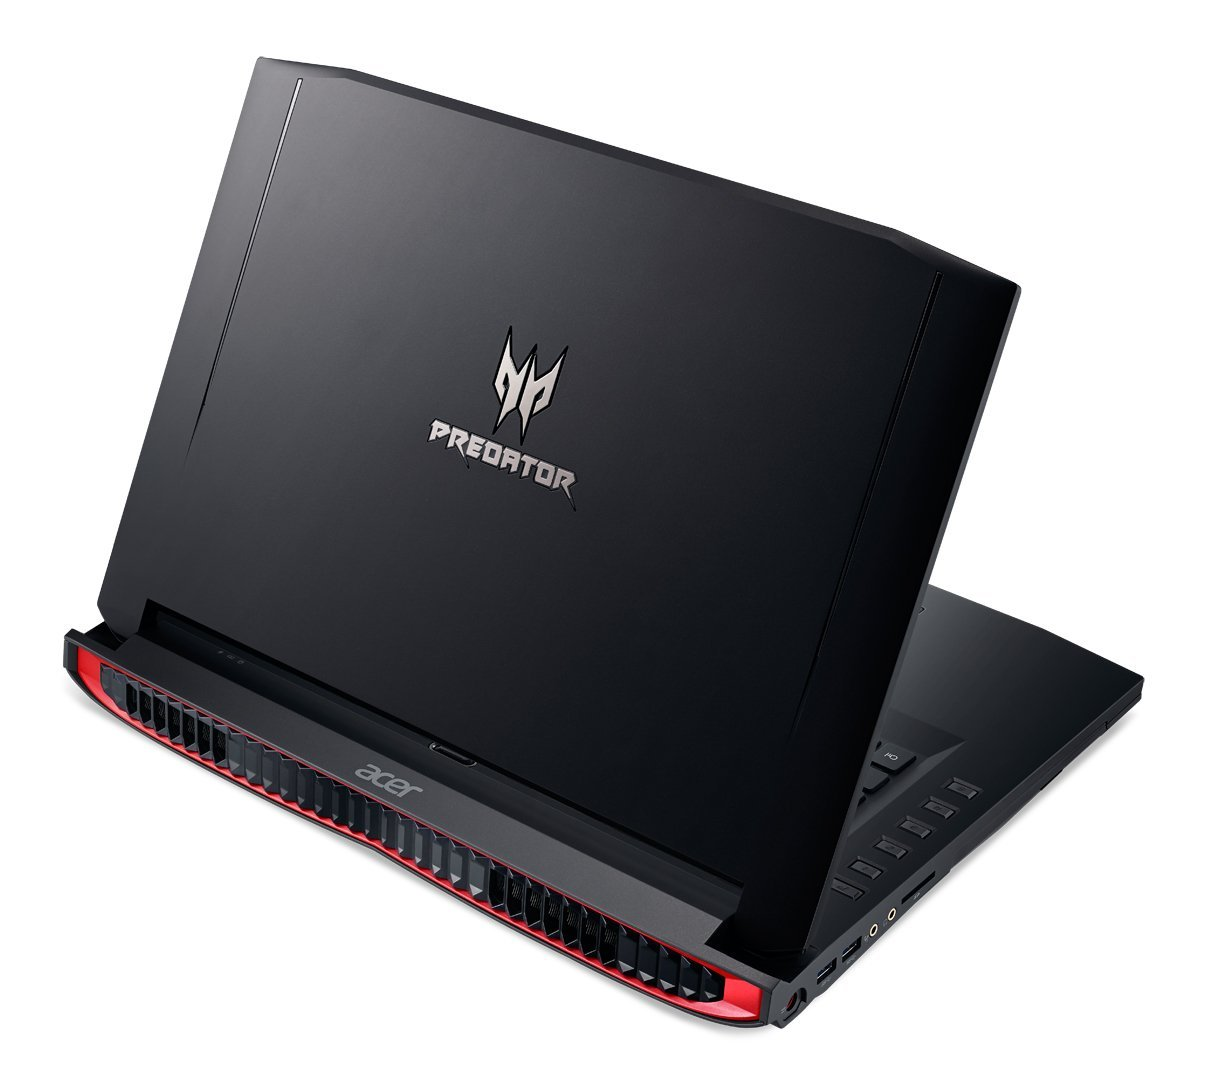 Acer Predator G9-791 Intel Thunderbolt Driver for Windows